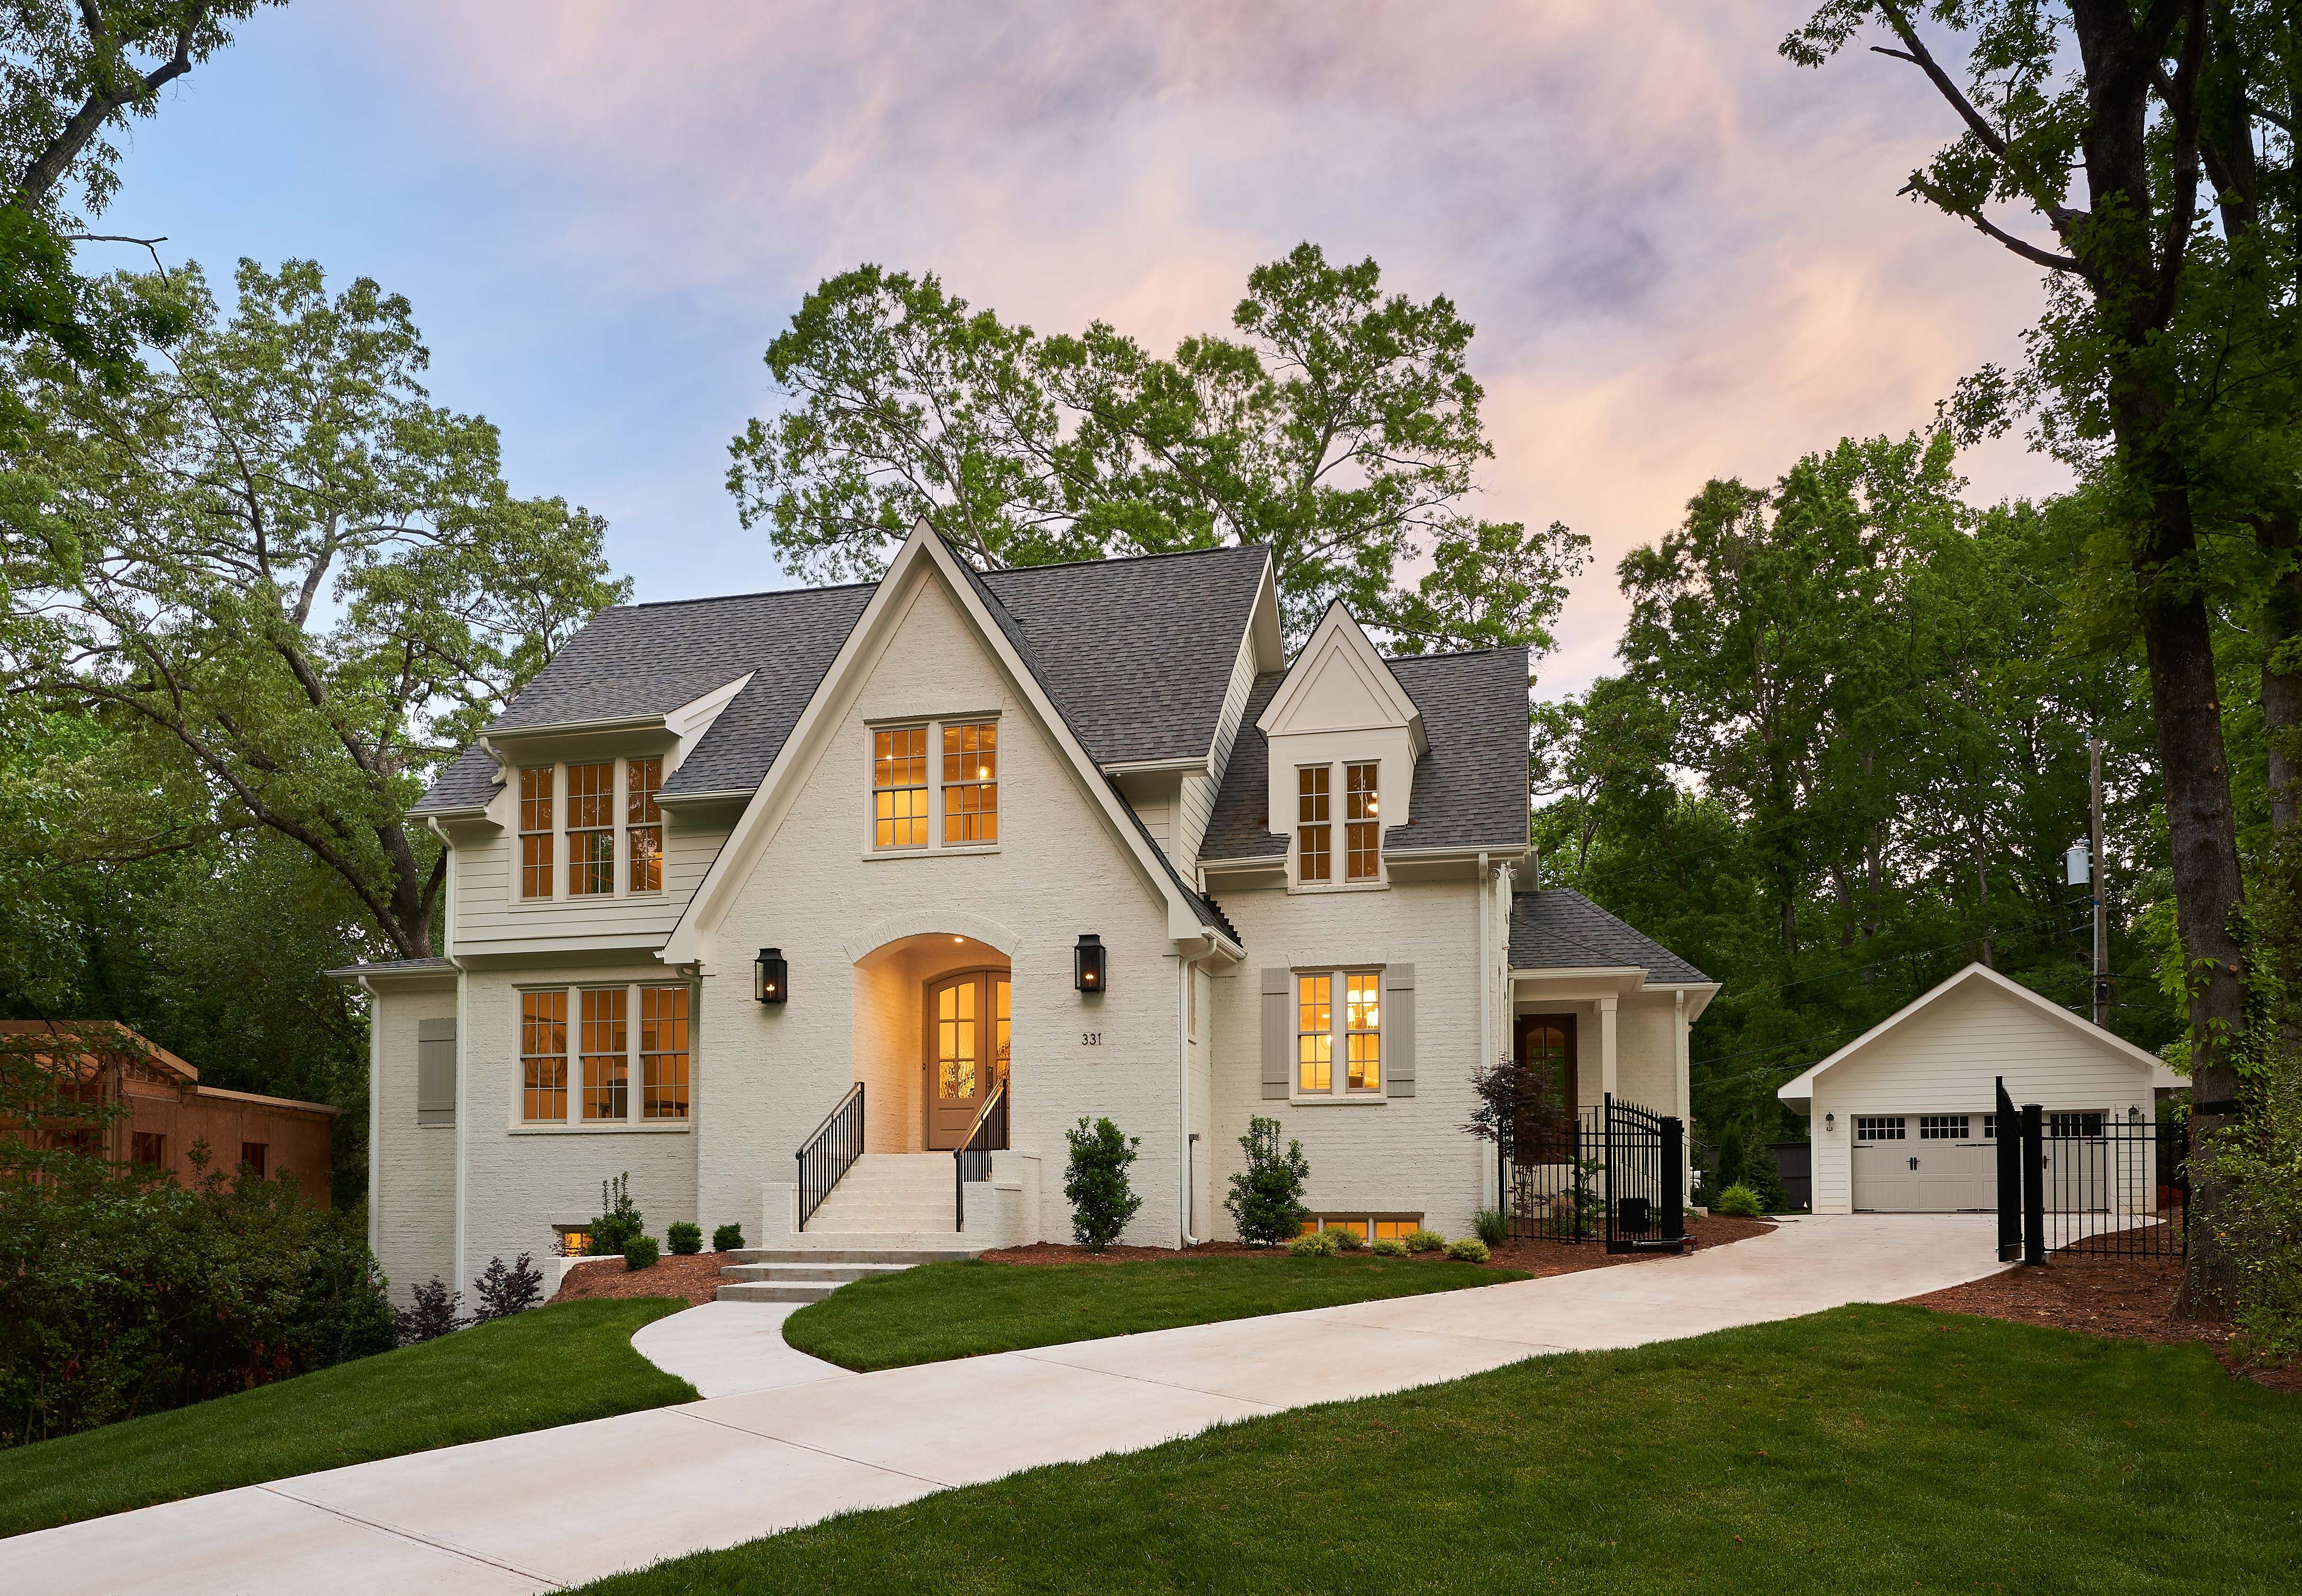 New custom home in cotswold charlotte nc grandfather homes